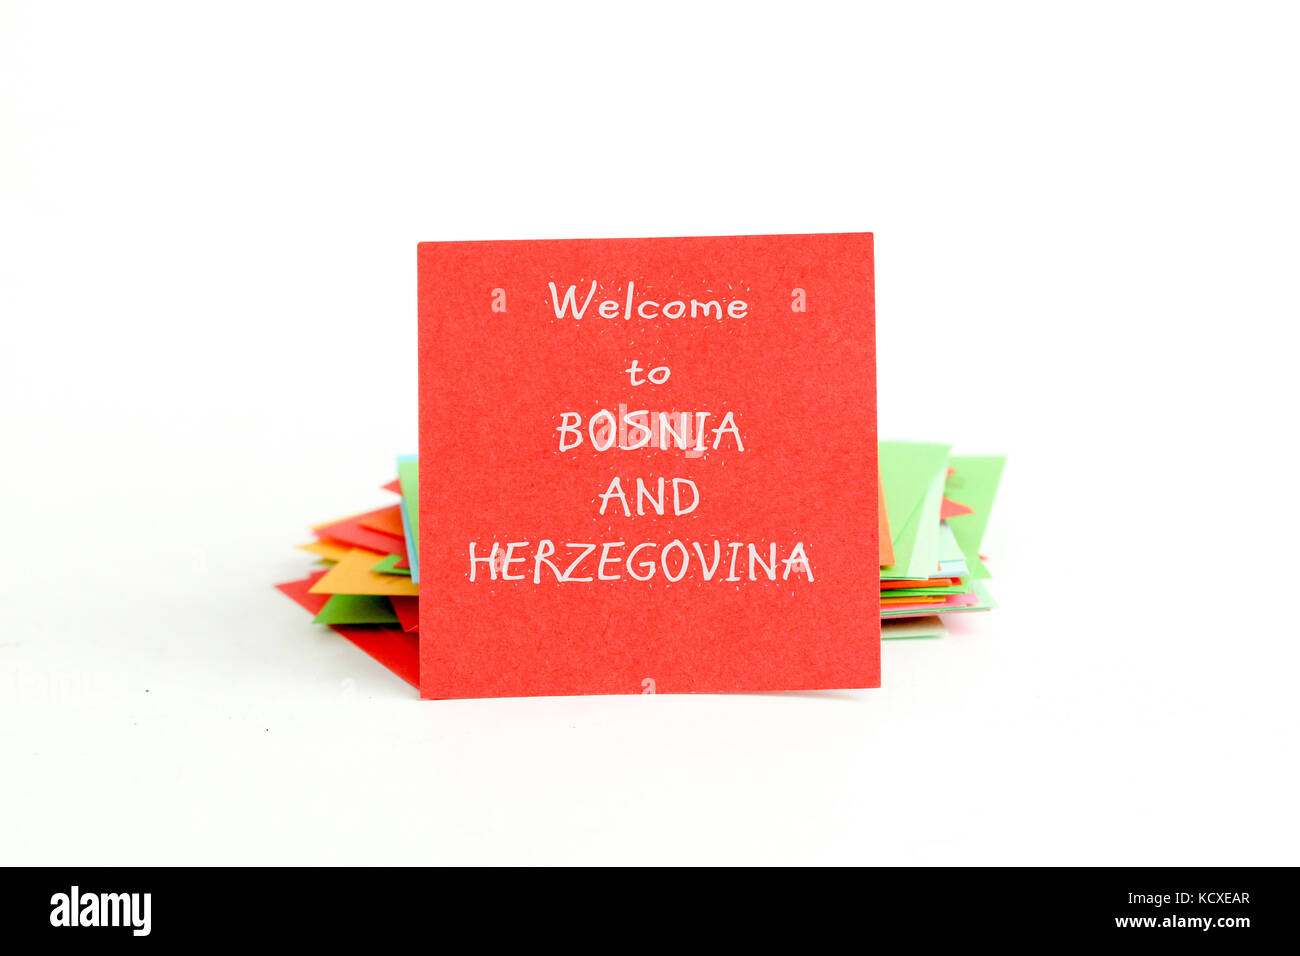 picture of a red note paper with text welcome to bosnia herzegovina - Stock Image